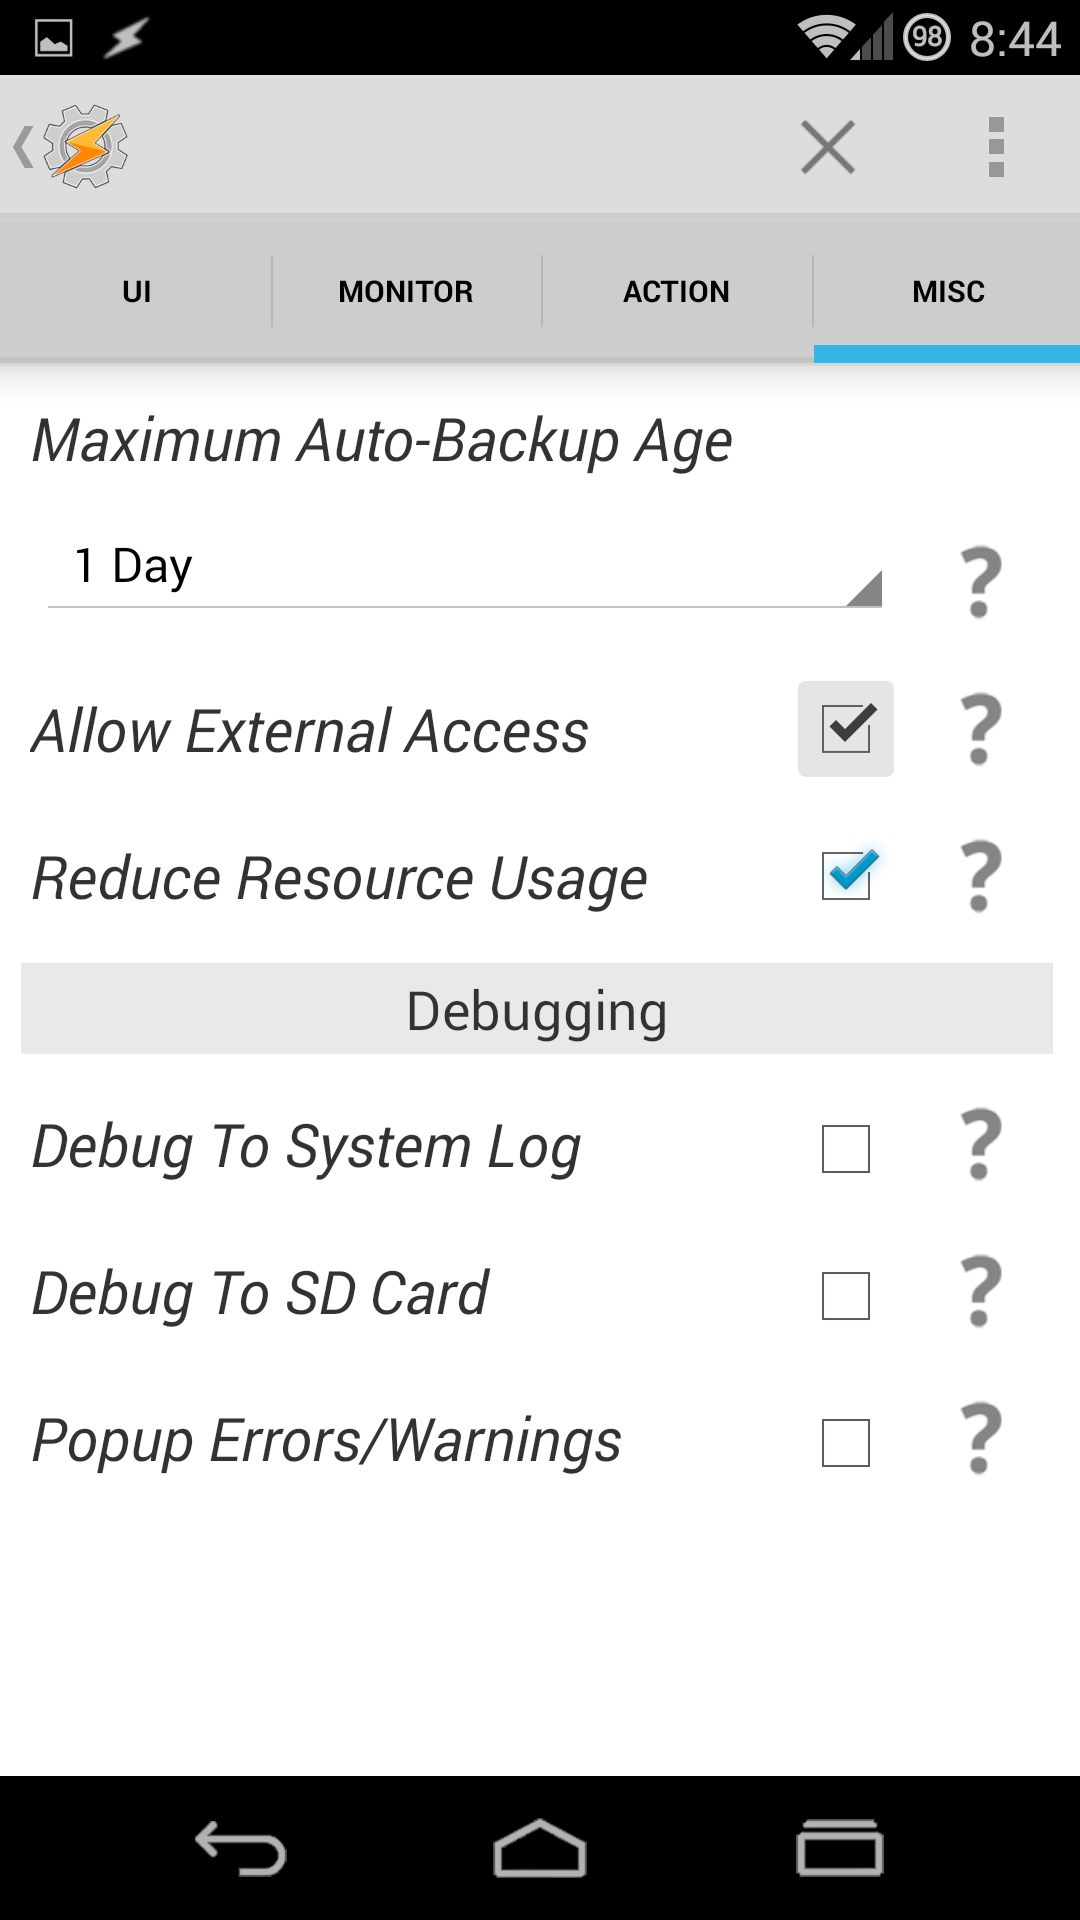 Go to the Misc tab and Enable External Access